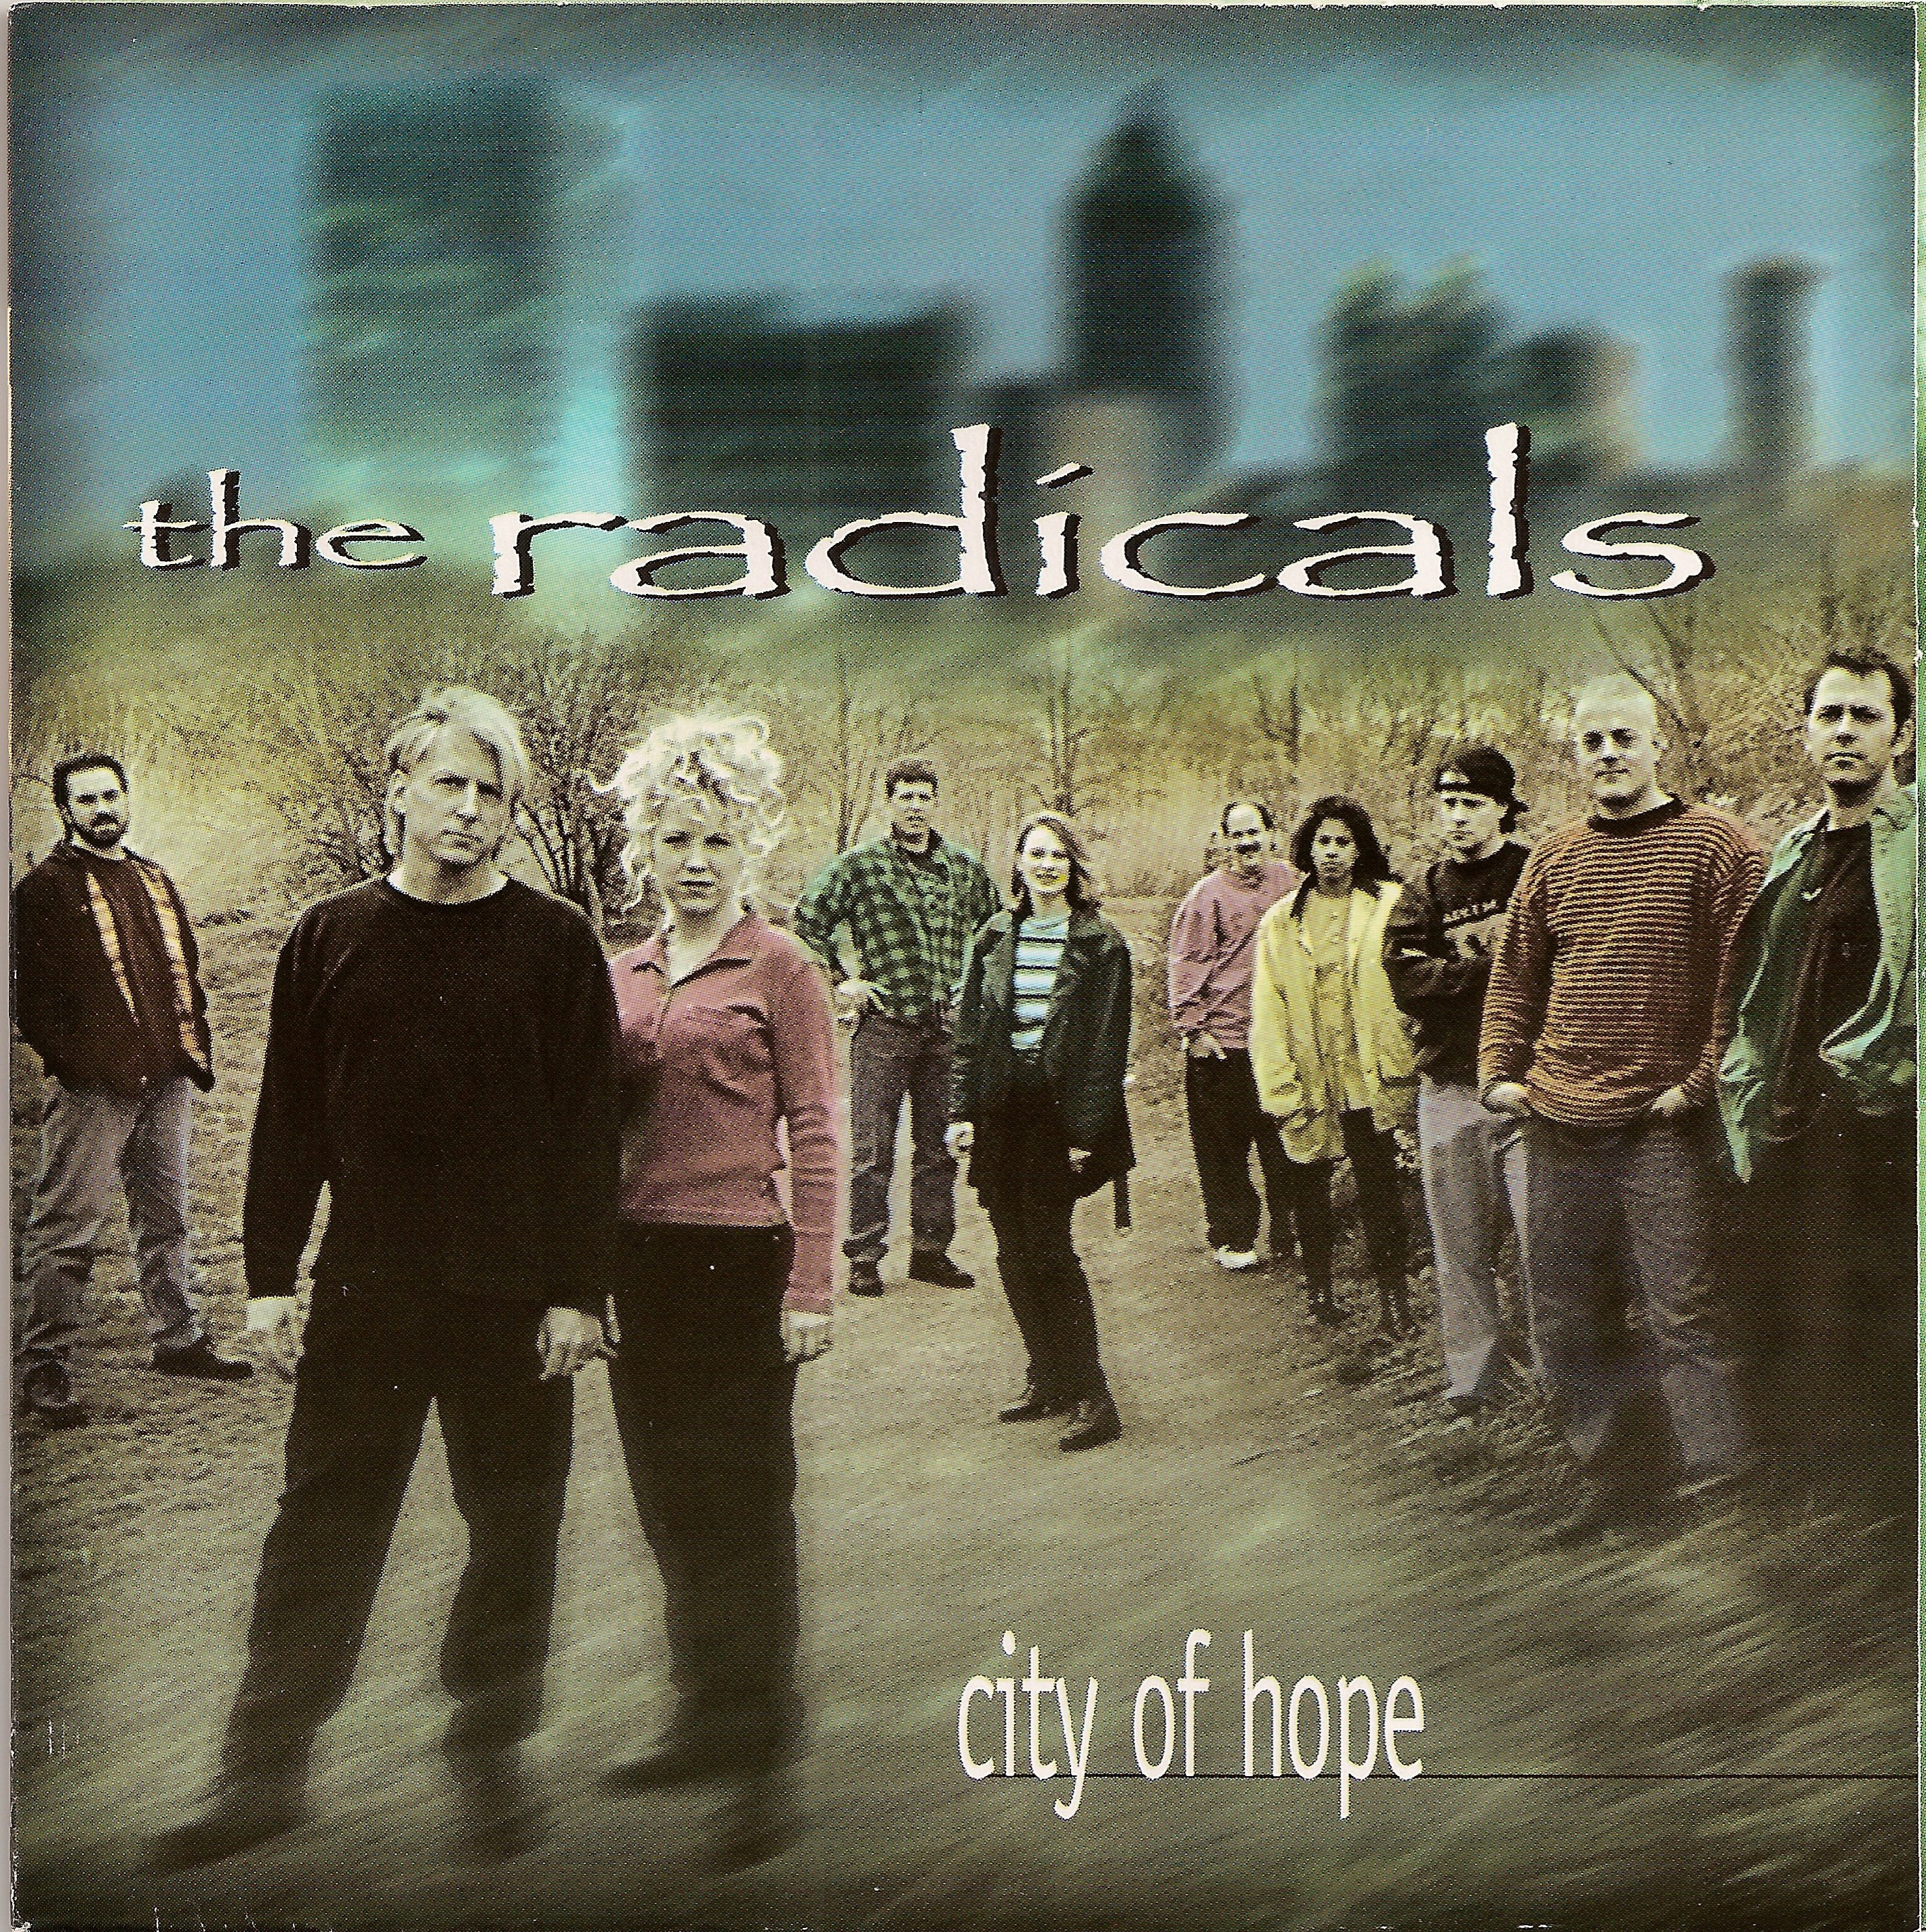 The Radicals City of Hope